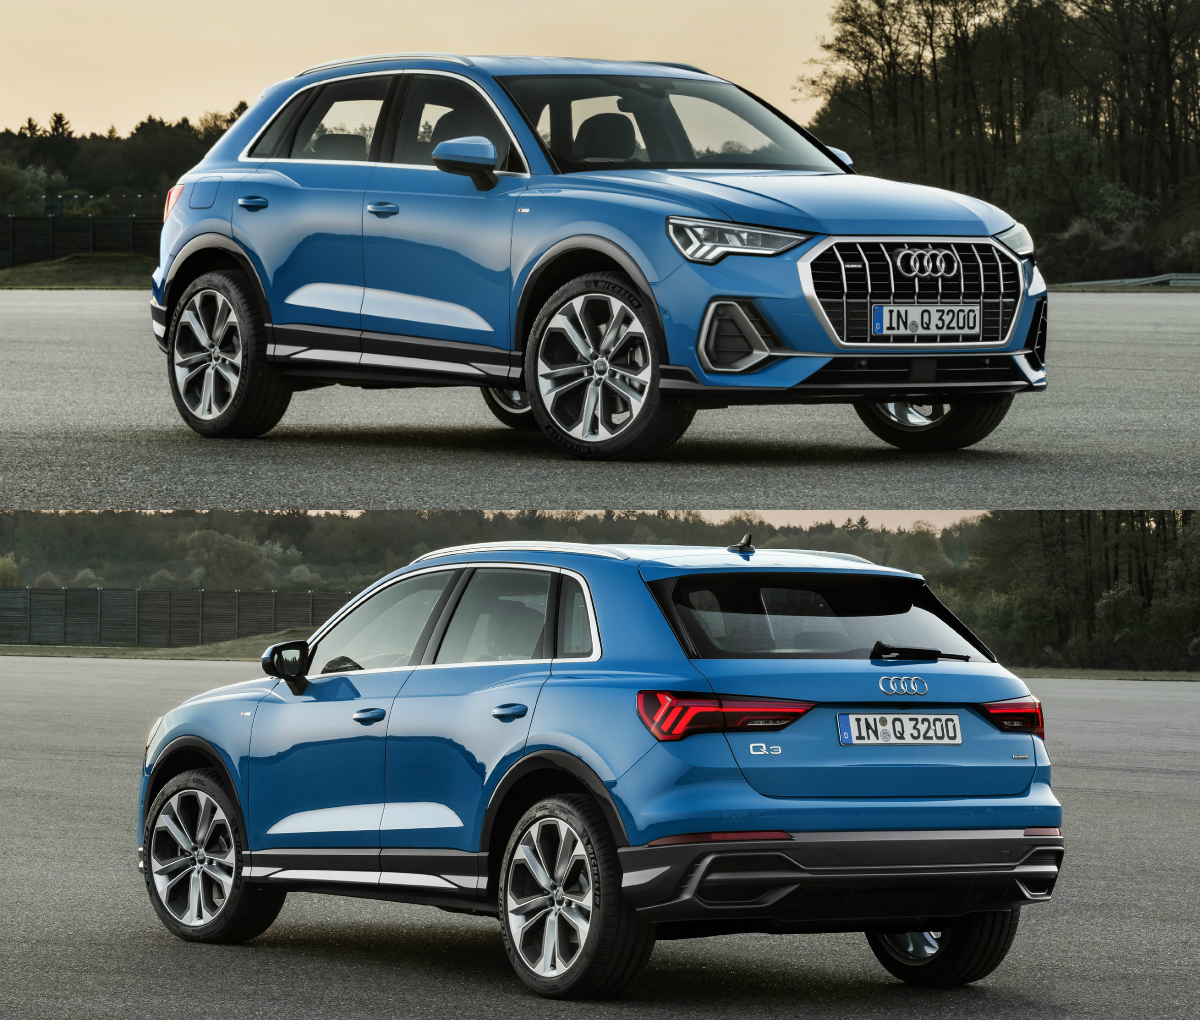 Audi Reveals Second-generation Q3 SUV